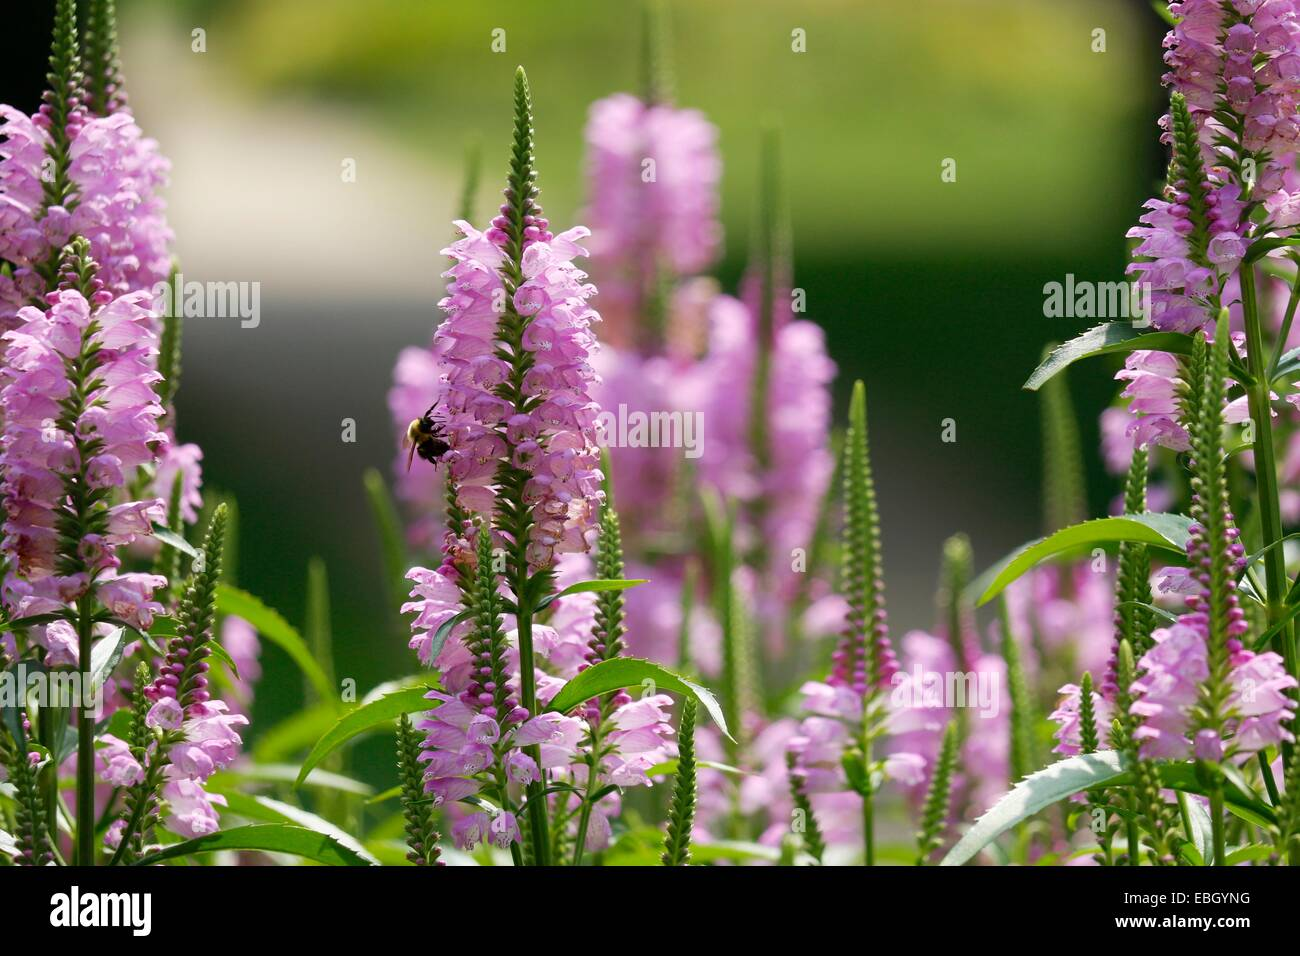 Obedient plant flowers with bumblebee. - Stock Image